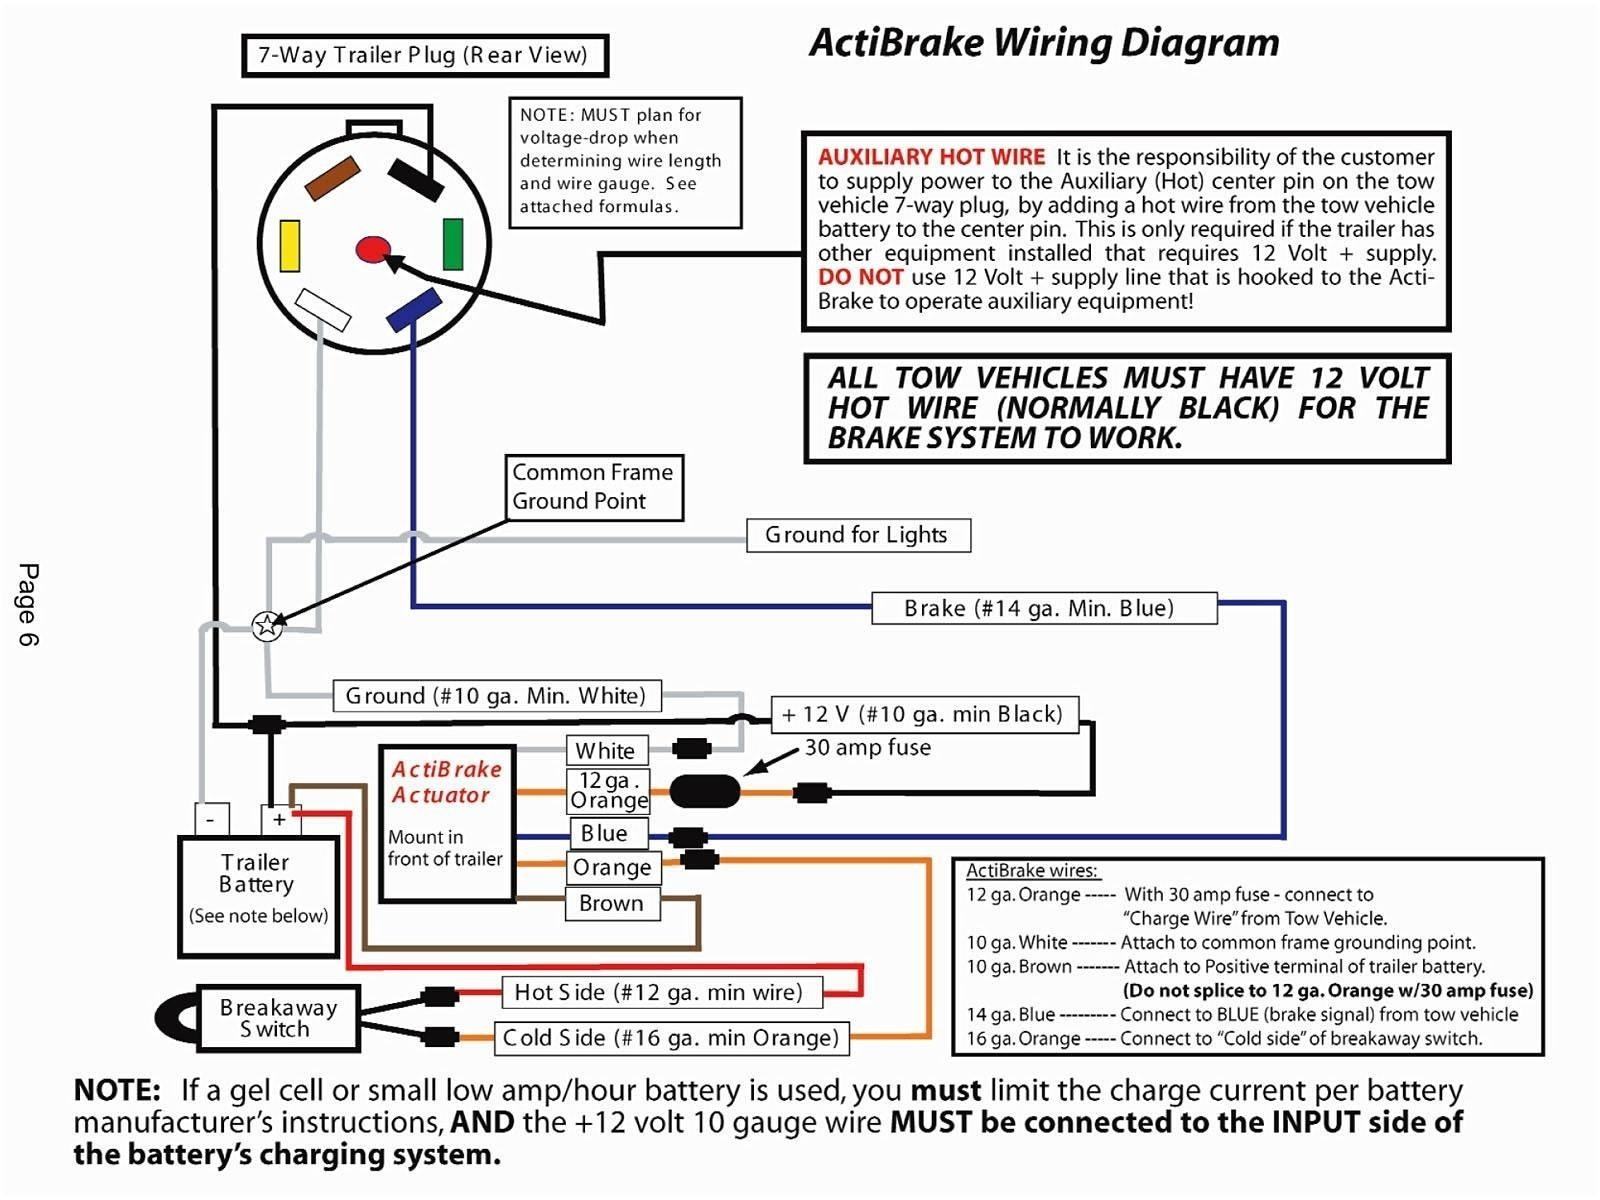 texas bragg wiring diagram all diagram schematics Texas Bragg Trailer Wiring Diagram texas bragg trailer wiring diagram